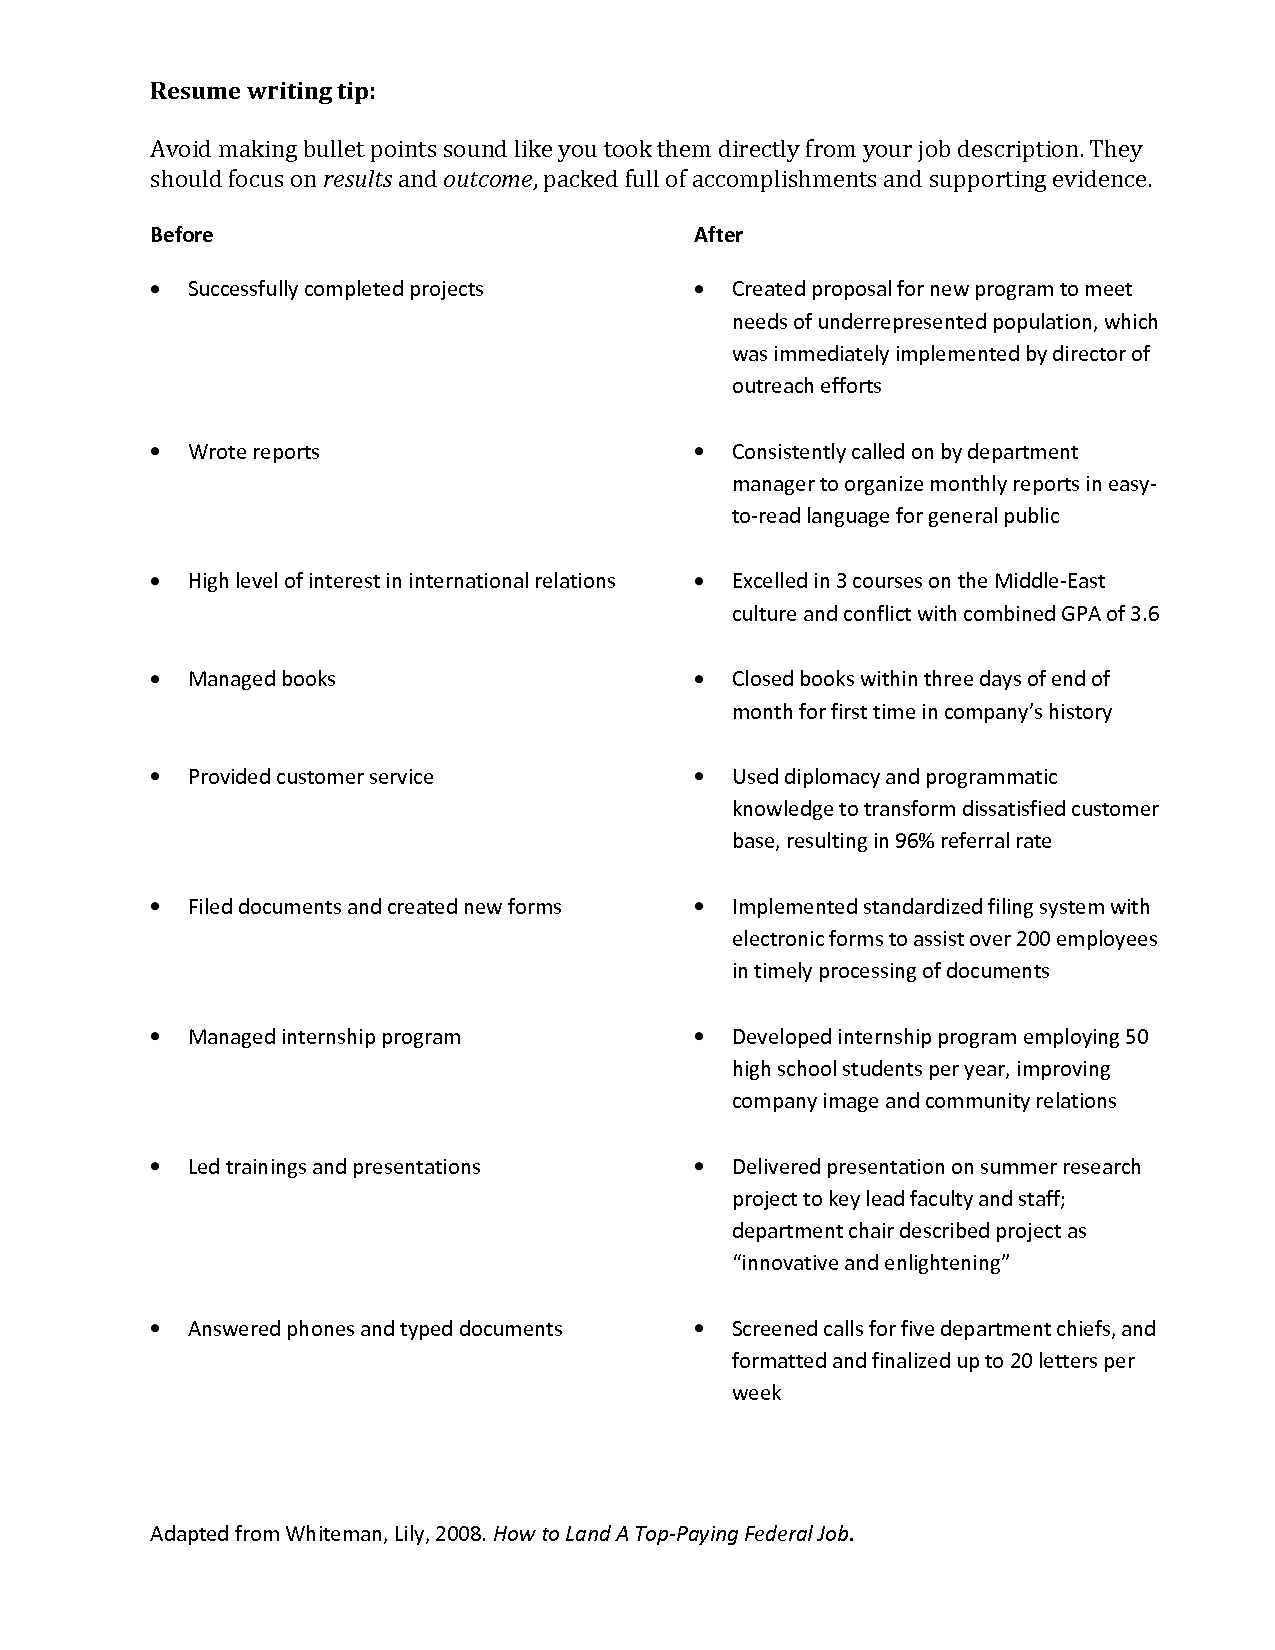 Resume Bullet Points Examples Resume Template For Google Resume Writing Coverwriting A Resume